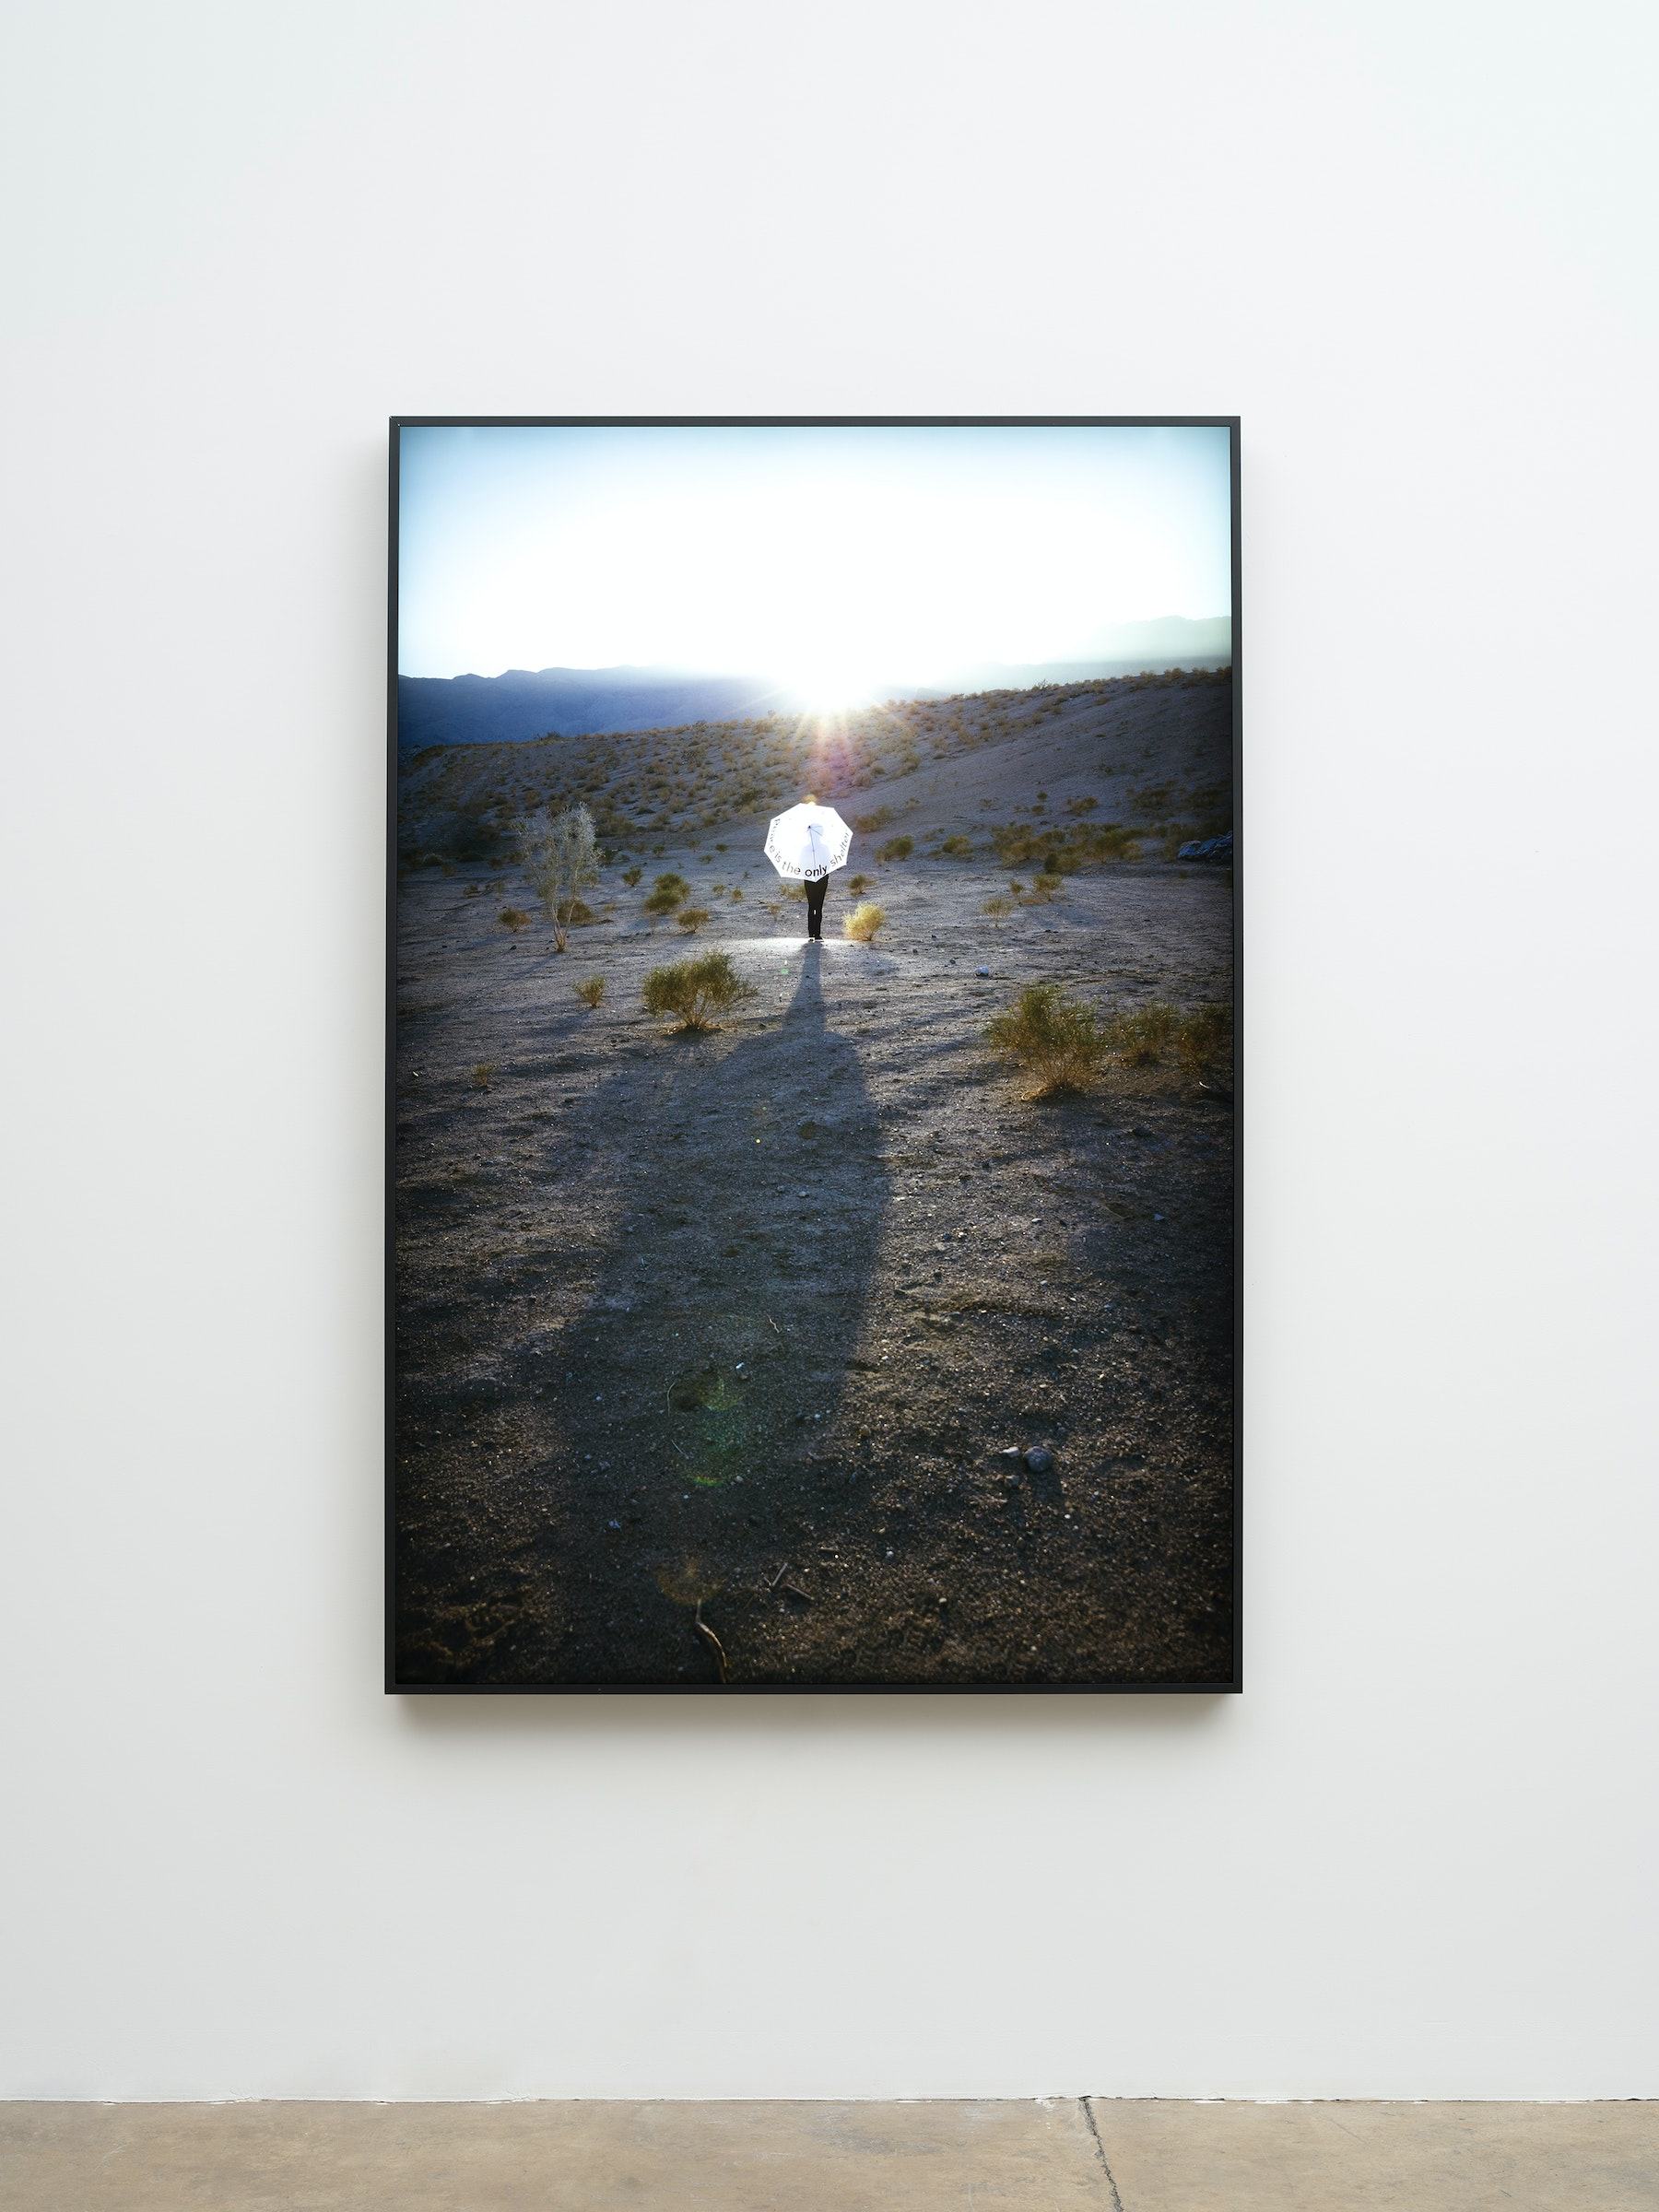 """Mary Kelly """"Peace is the only shelter,"""" 2019 Duratran mounted on1/4 inch acryilc, powder coated aluminum LED light box 67.875 x 45.375 x 2.75"""" [HxWxD] (172.4 x 115.25 x 6.98 cm) Edition 1 of 2, 1 AP Inventory #KEL160.01 Courtesy of the artist and Vielmetter Los Angeles Photo credit: Jeff Mclane"""